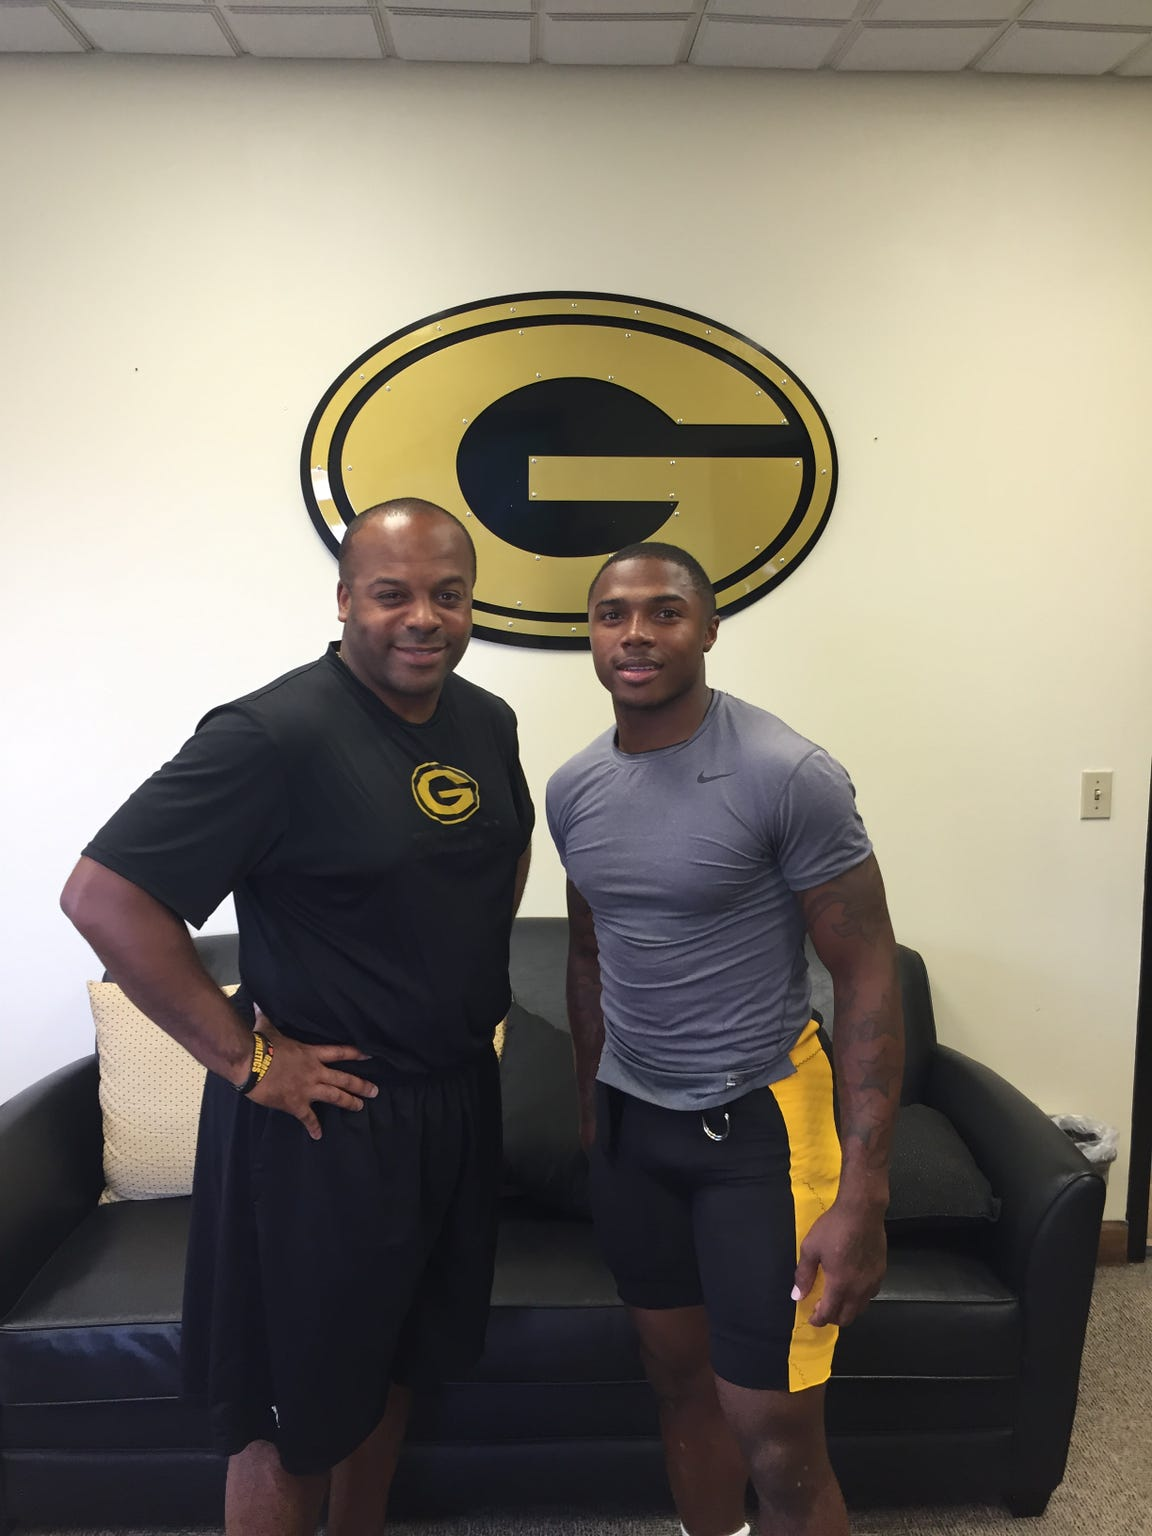 Grambling football coach Broderick Fobbs, left, poses for a photo with running back Martez Carter, right.